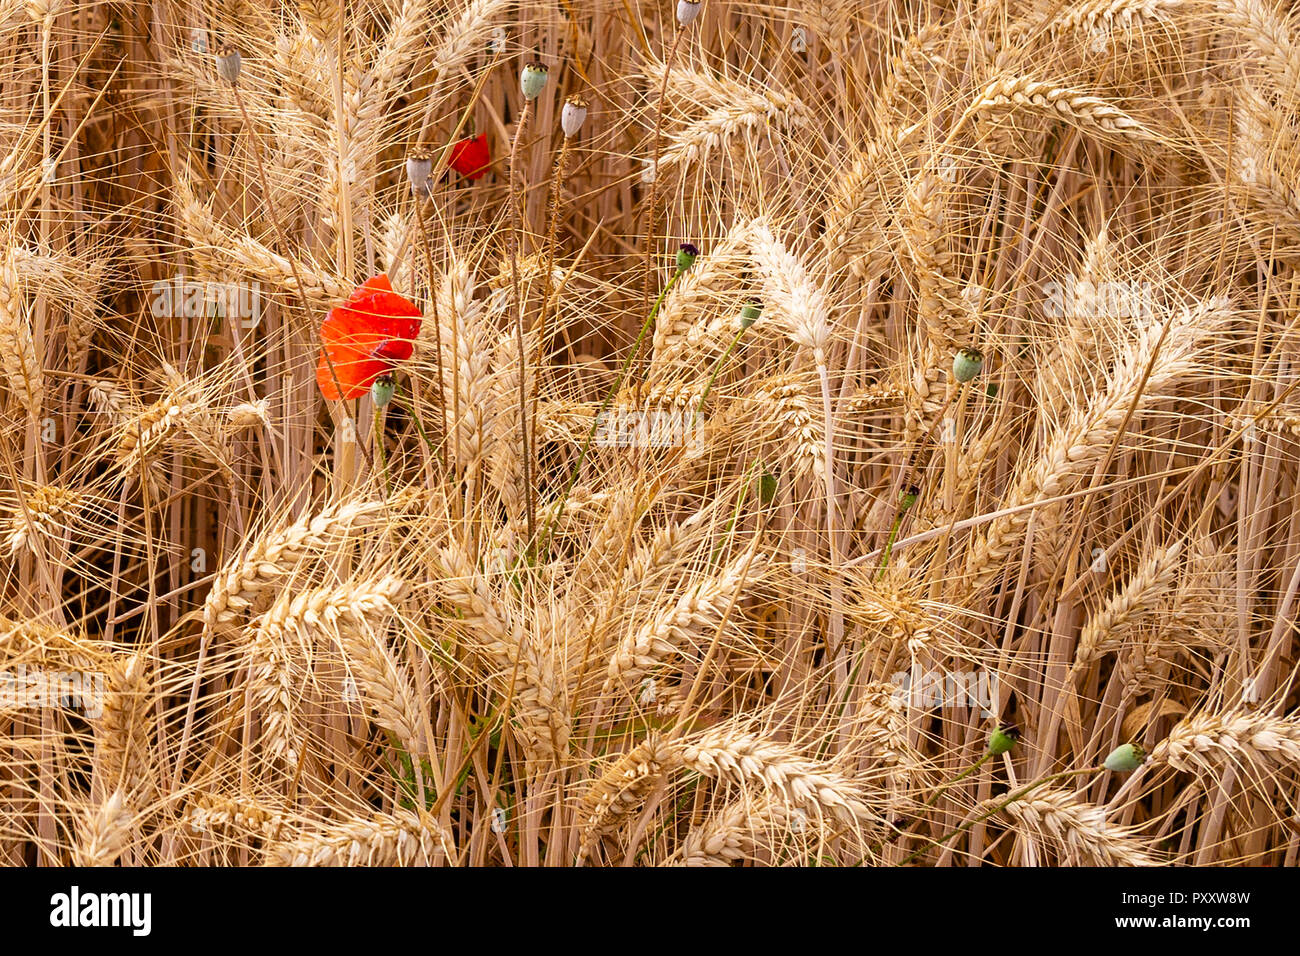 'Fair waved the golden corn', Stamford, Lincolnshire, UK - Stock Image